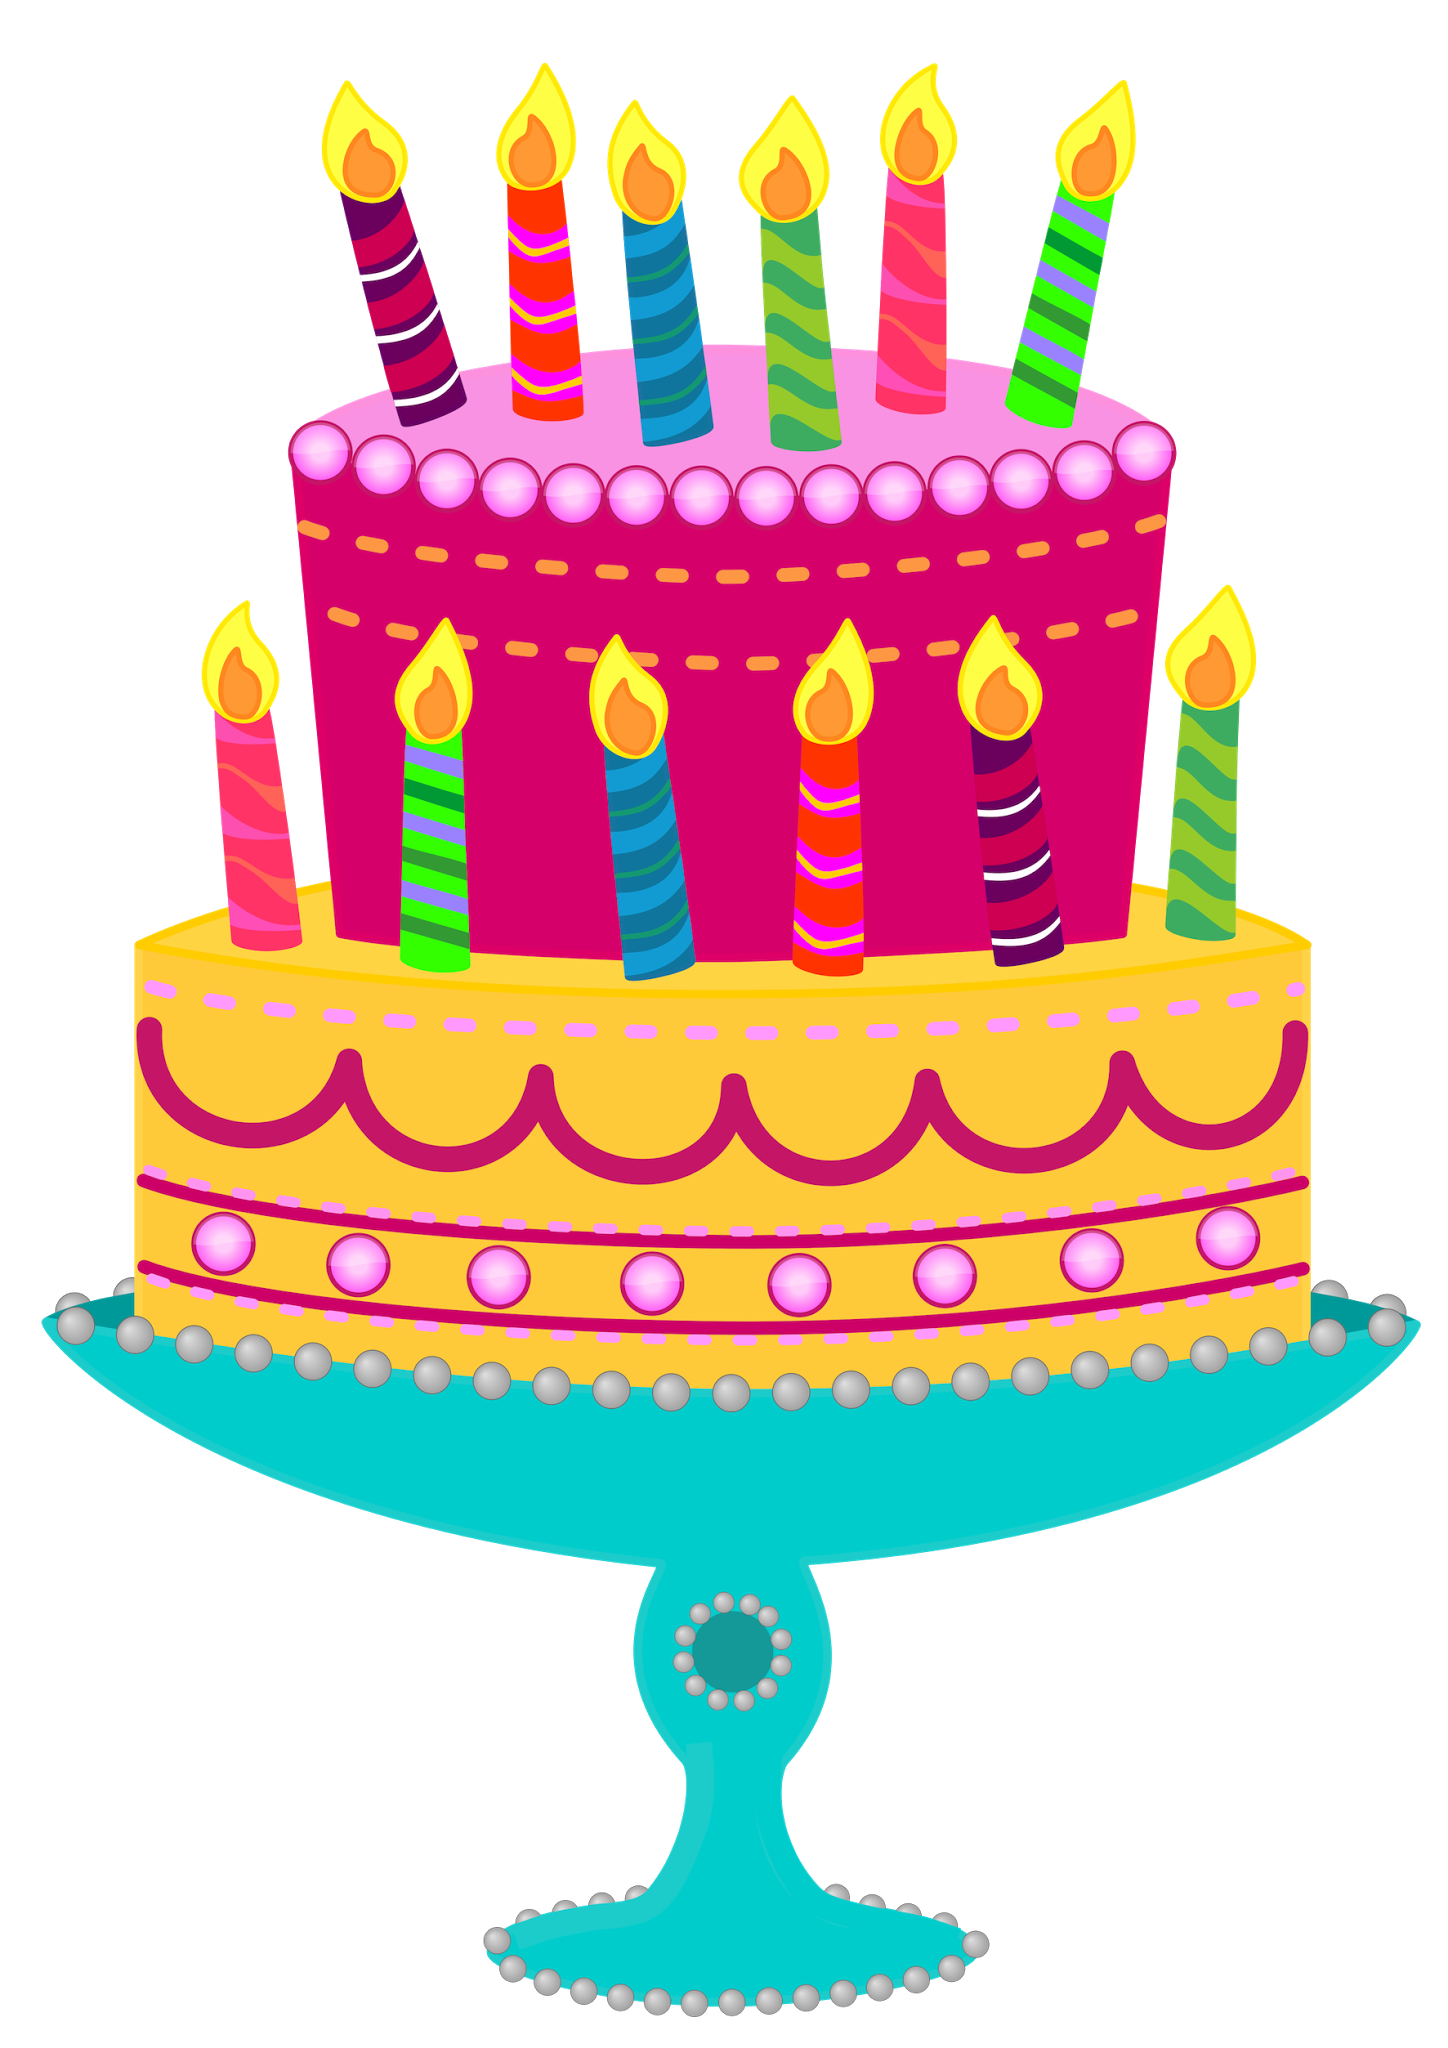 Clipart happy birthday cake clipart images gallery for free.